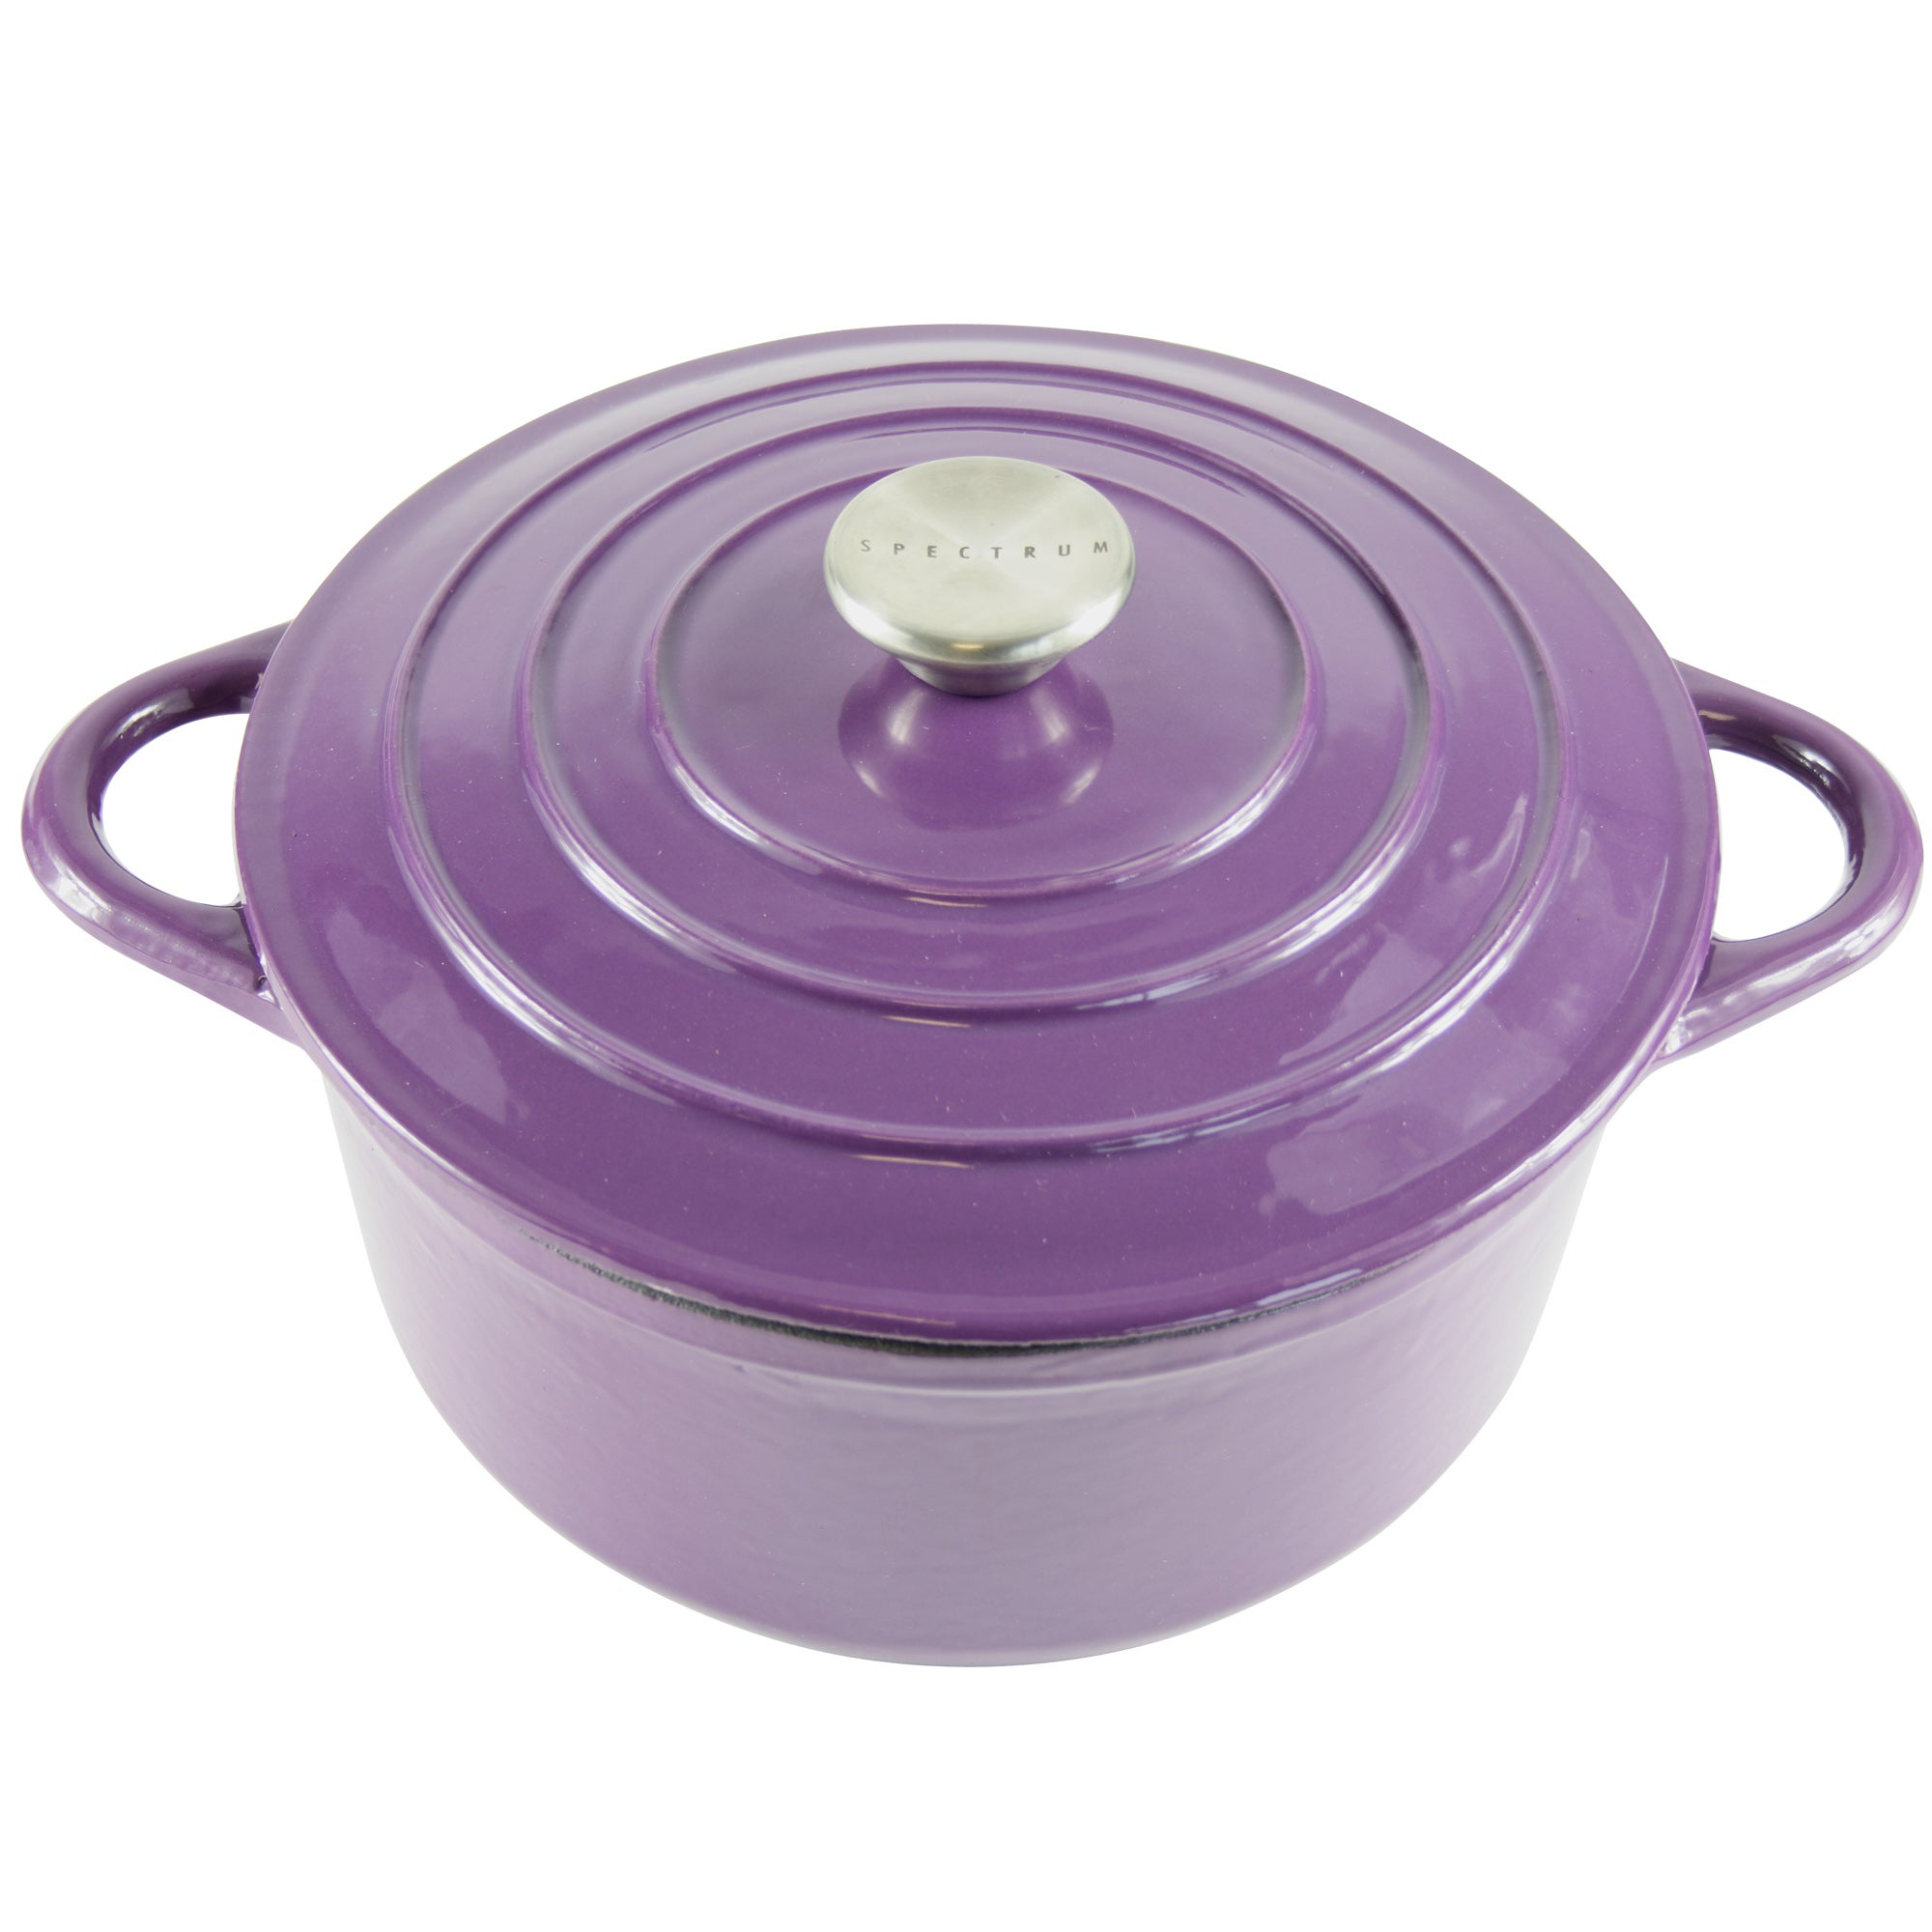 Plum Spectrum Collection Cast Iron Casserole Dish